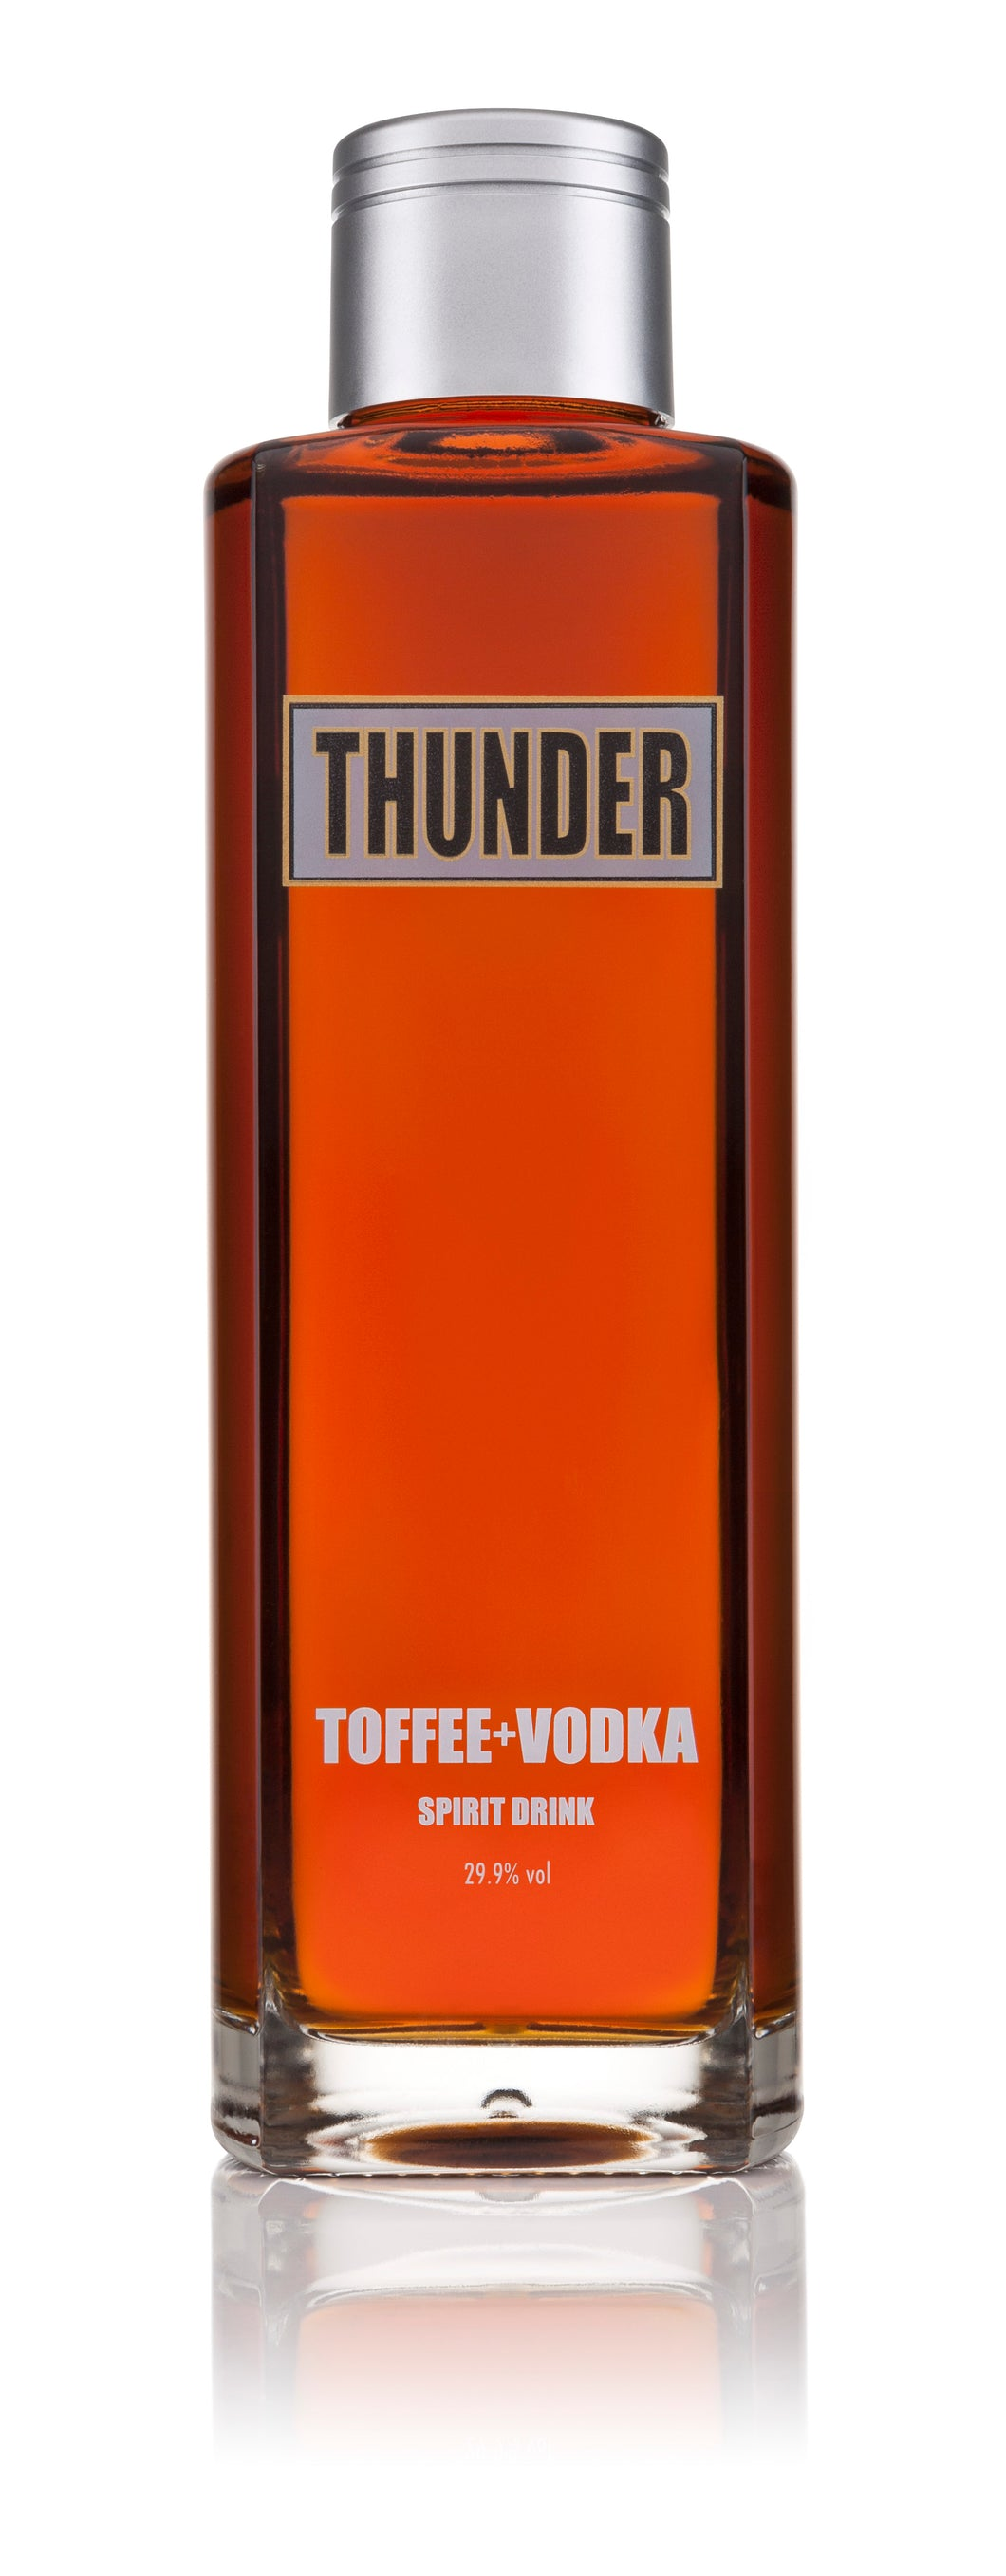 THUNDER TOFFEE VODKA 70CL BOTTLE